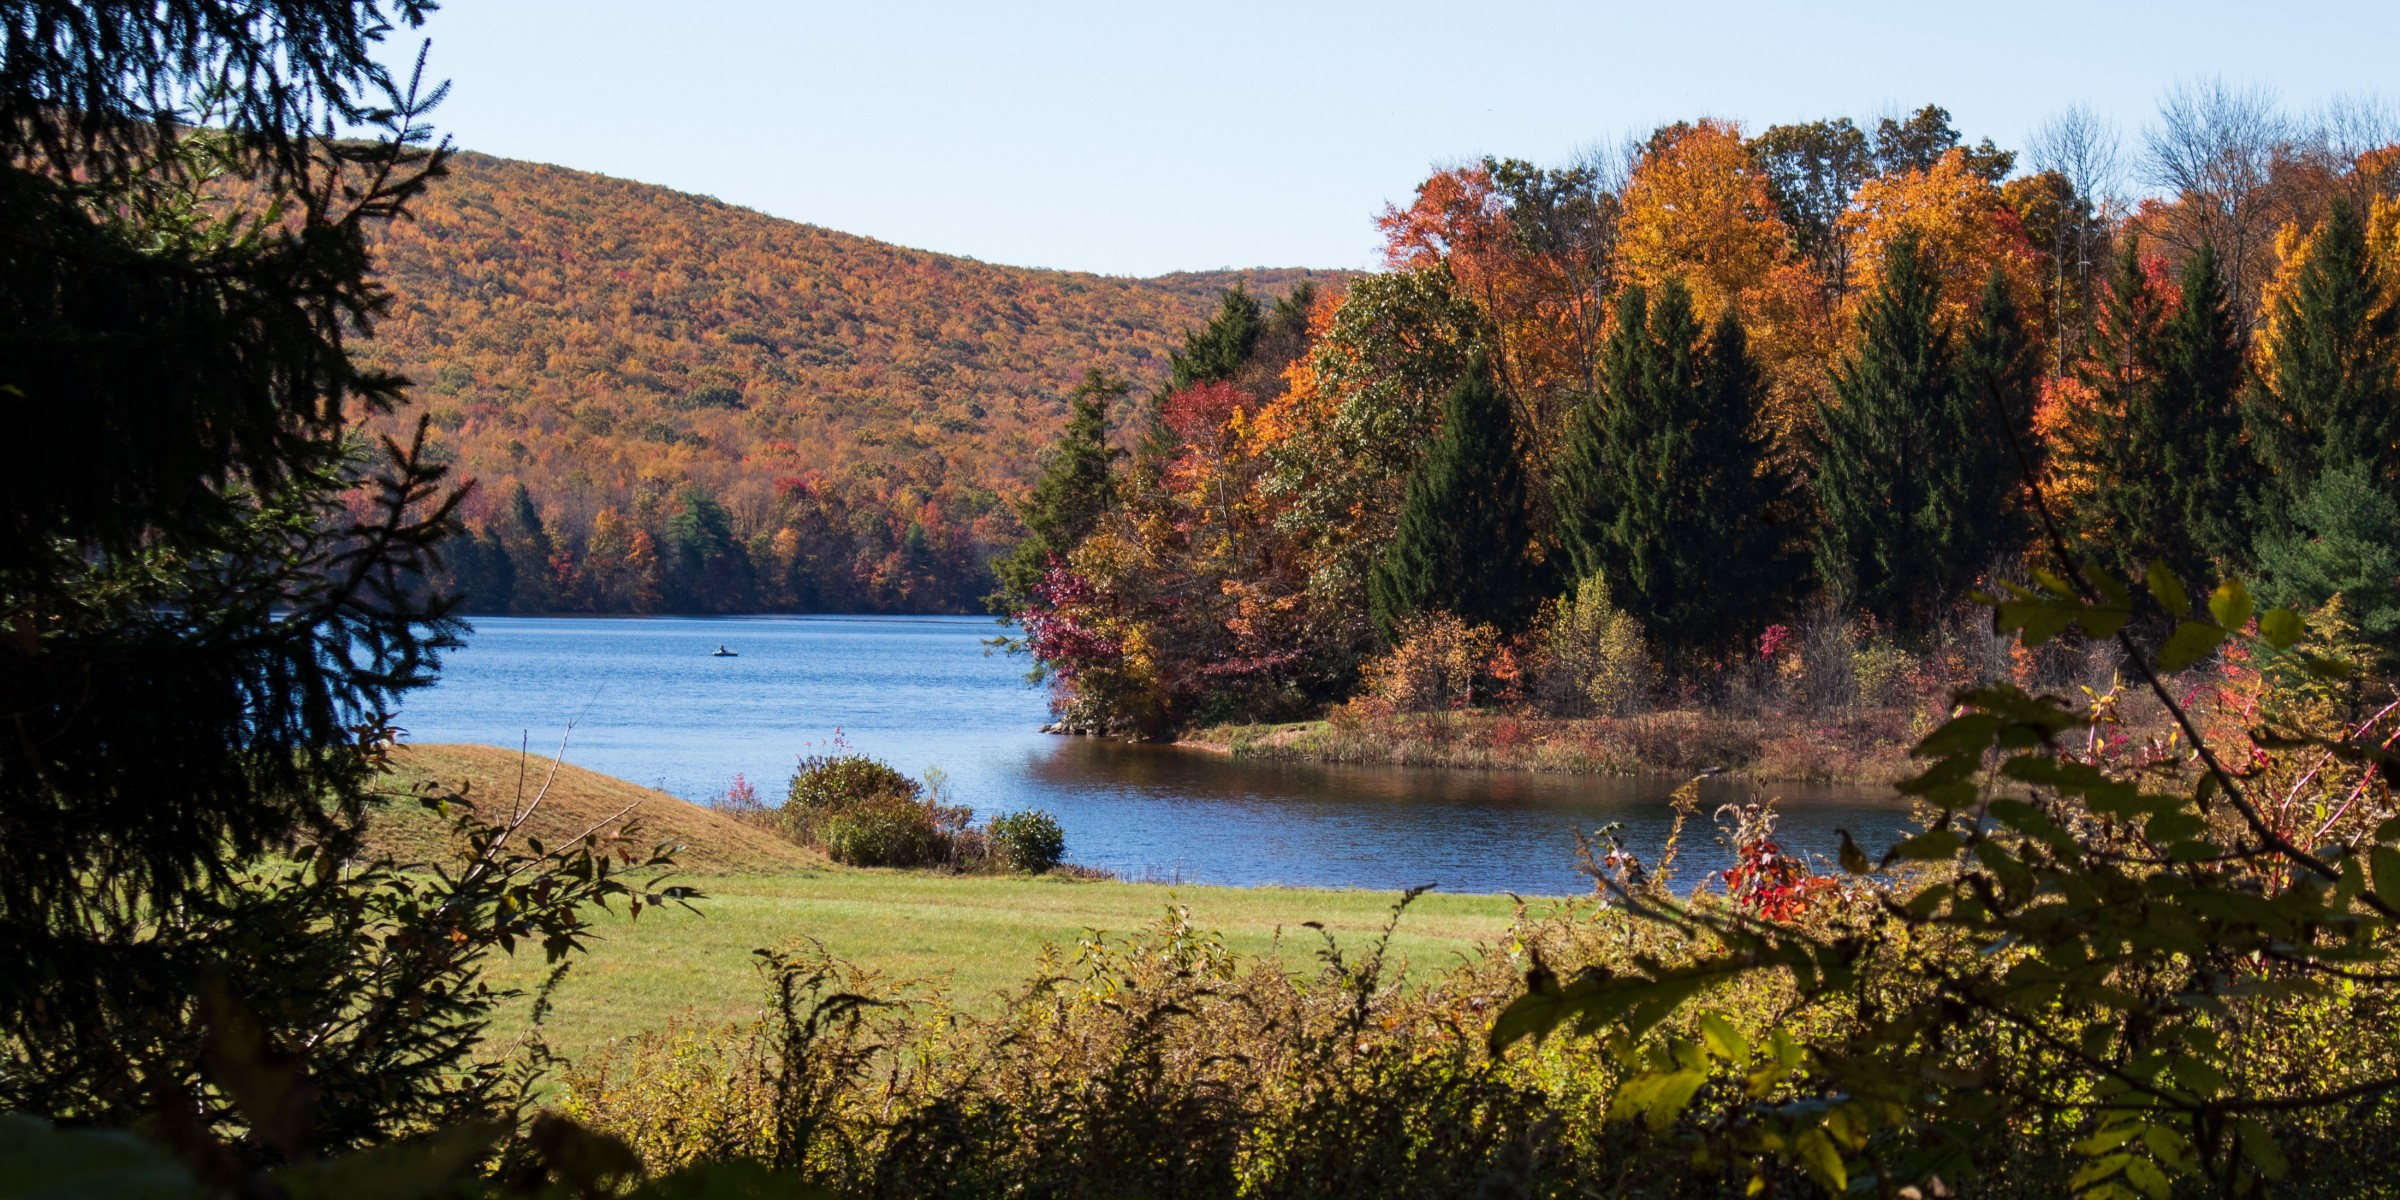 Autumn Trees by a lake in rural Pennsylvania